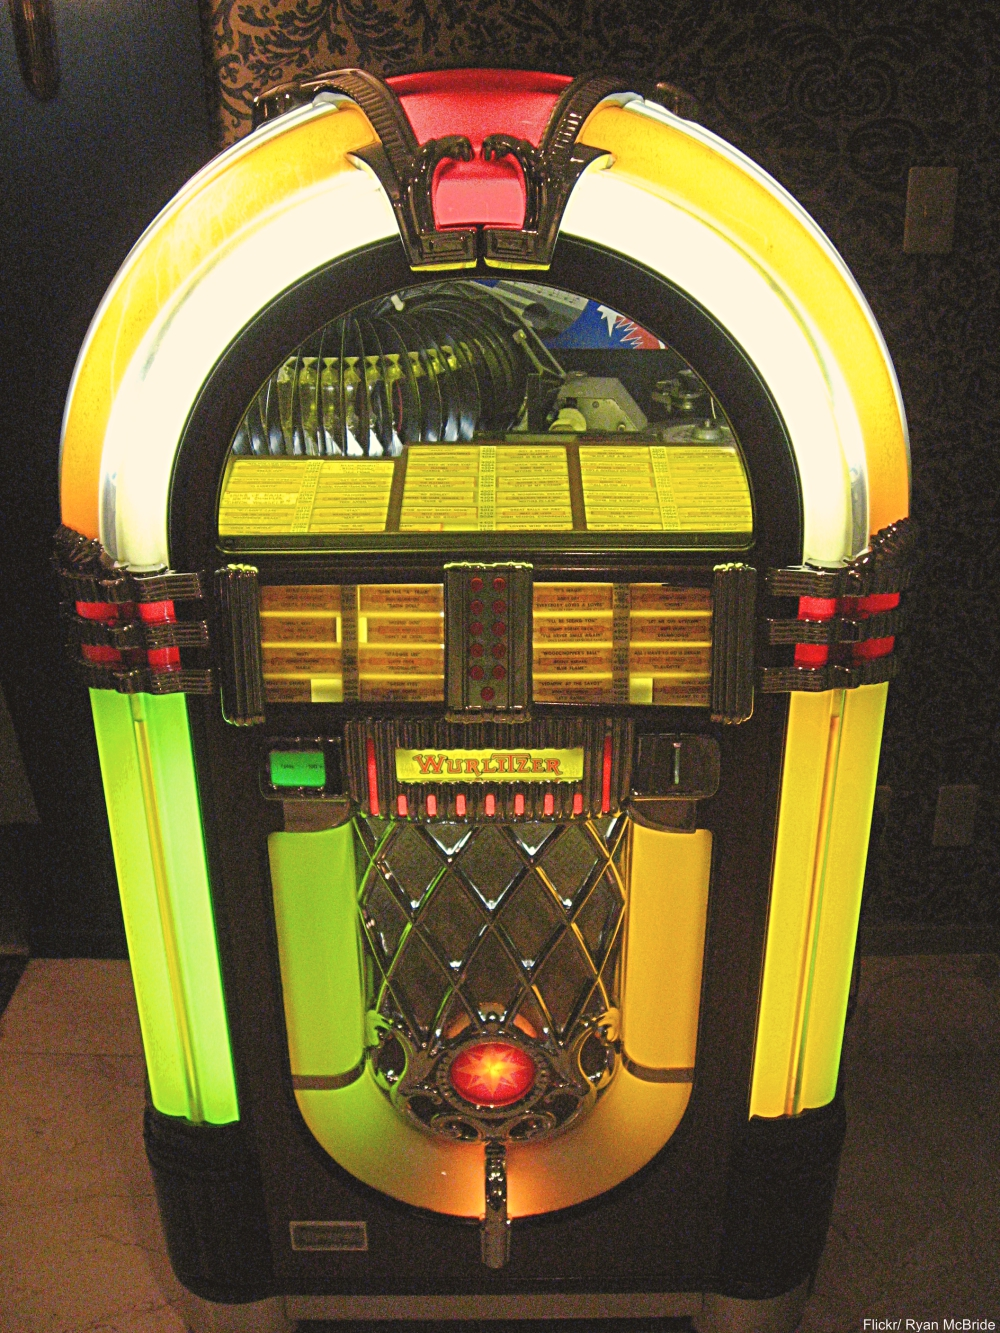 Vintage jukebox - Technology Items We Miss